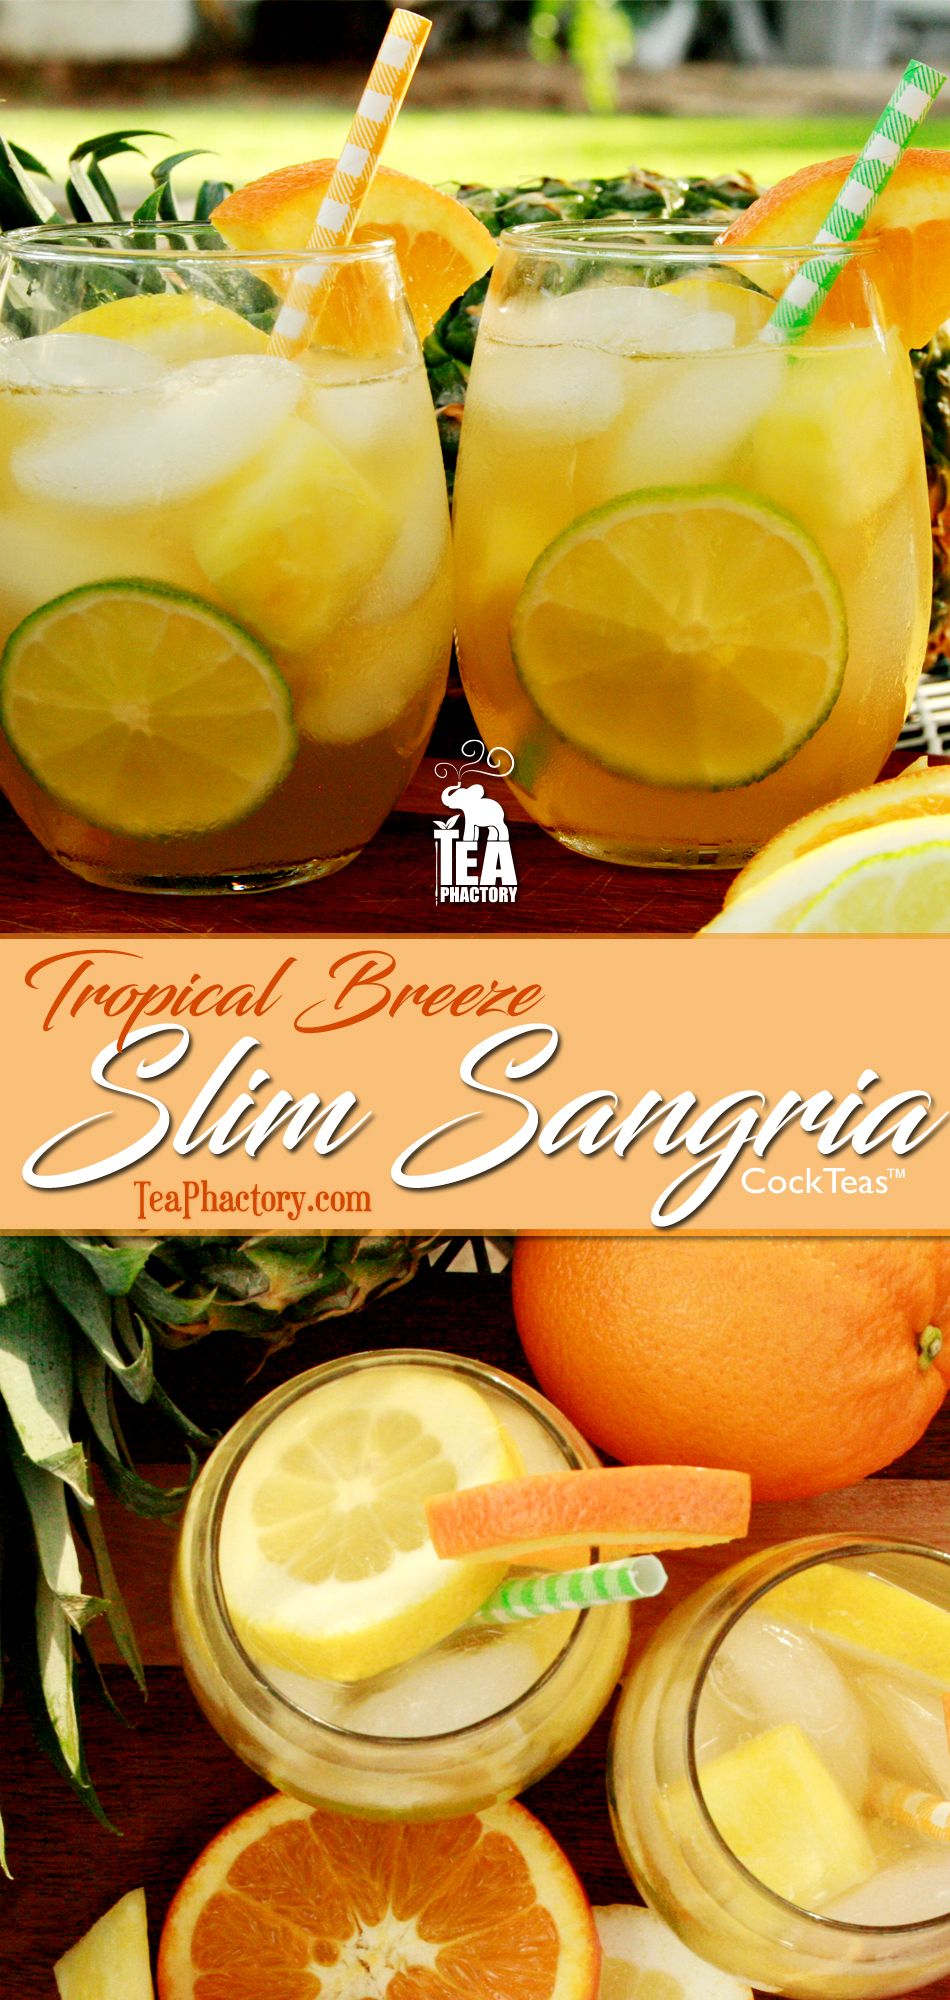 Tropical Breeze Sweet Sangria